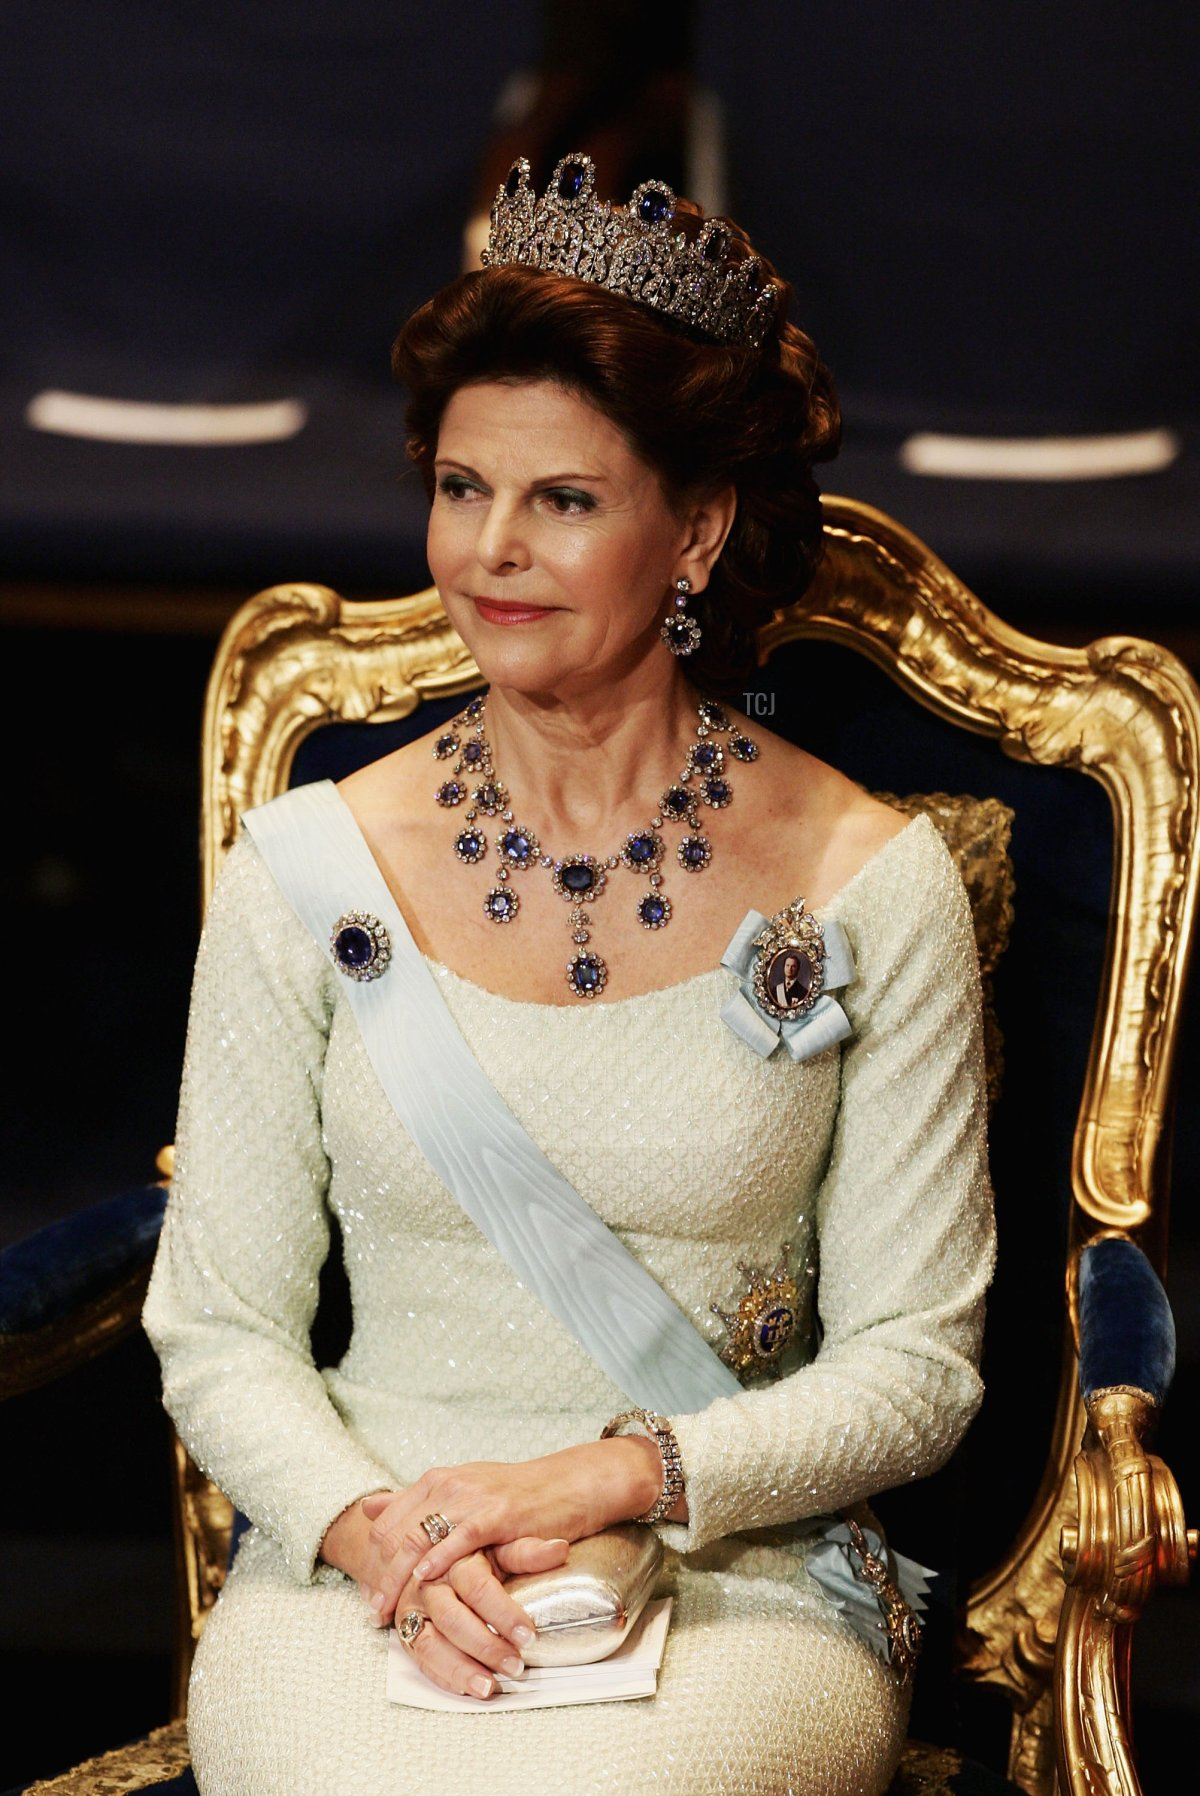 Queen Silvia of Sweden attends the awarding ceremony of the Nobel Prizes at City Hall December 10, 2004 in Stockholm, Sweden